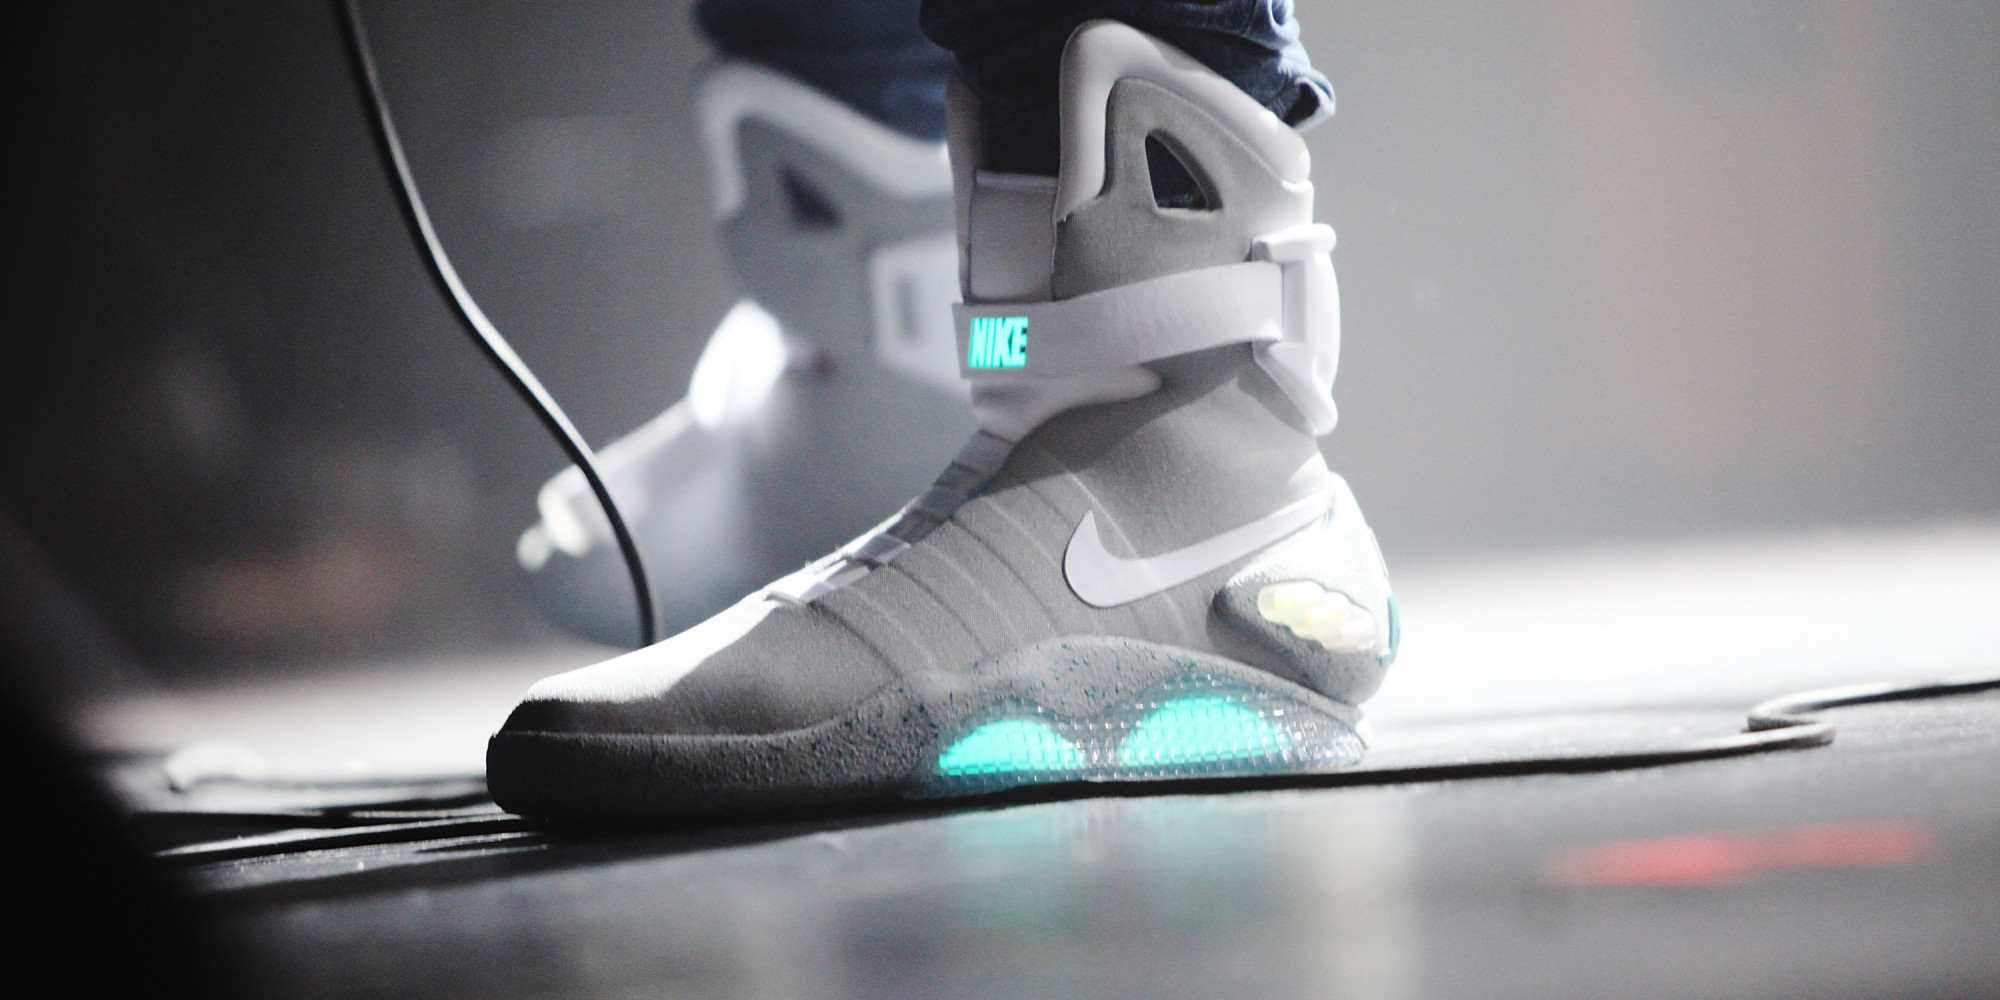 Nike market MAG self-lacing sneakers - Daily Mail Online